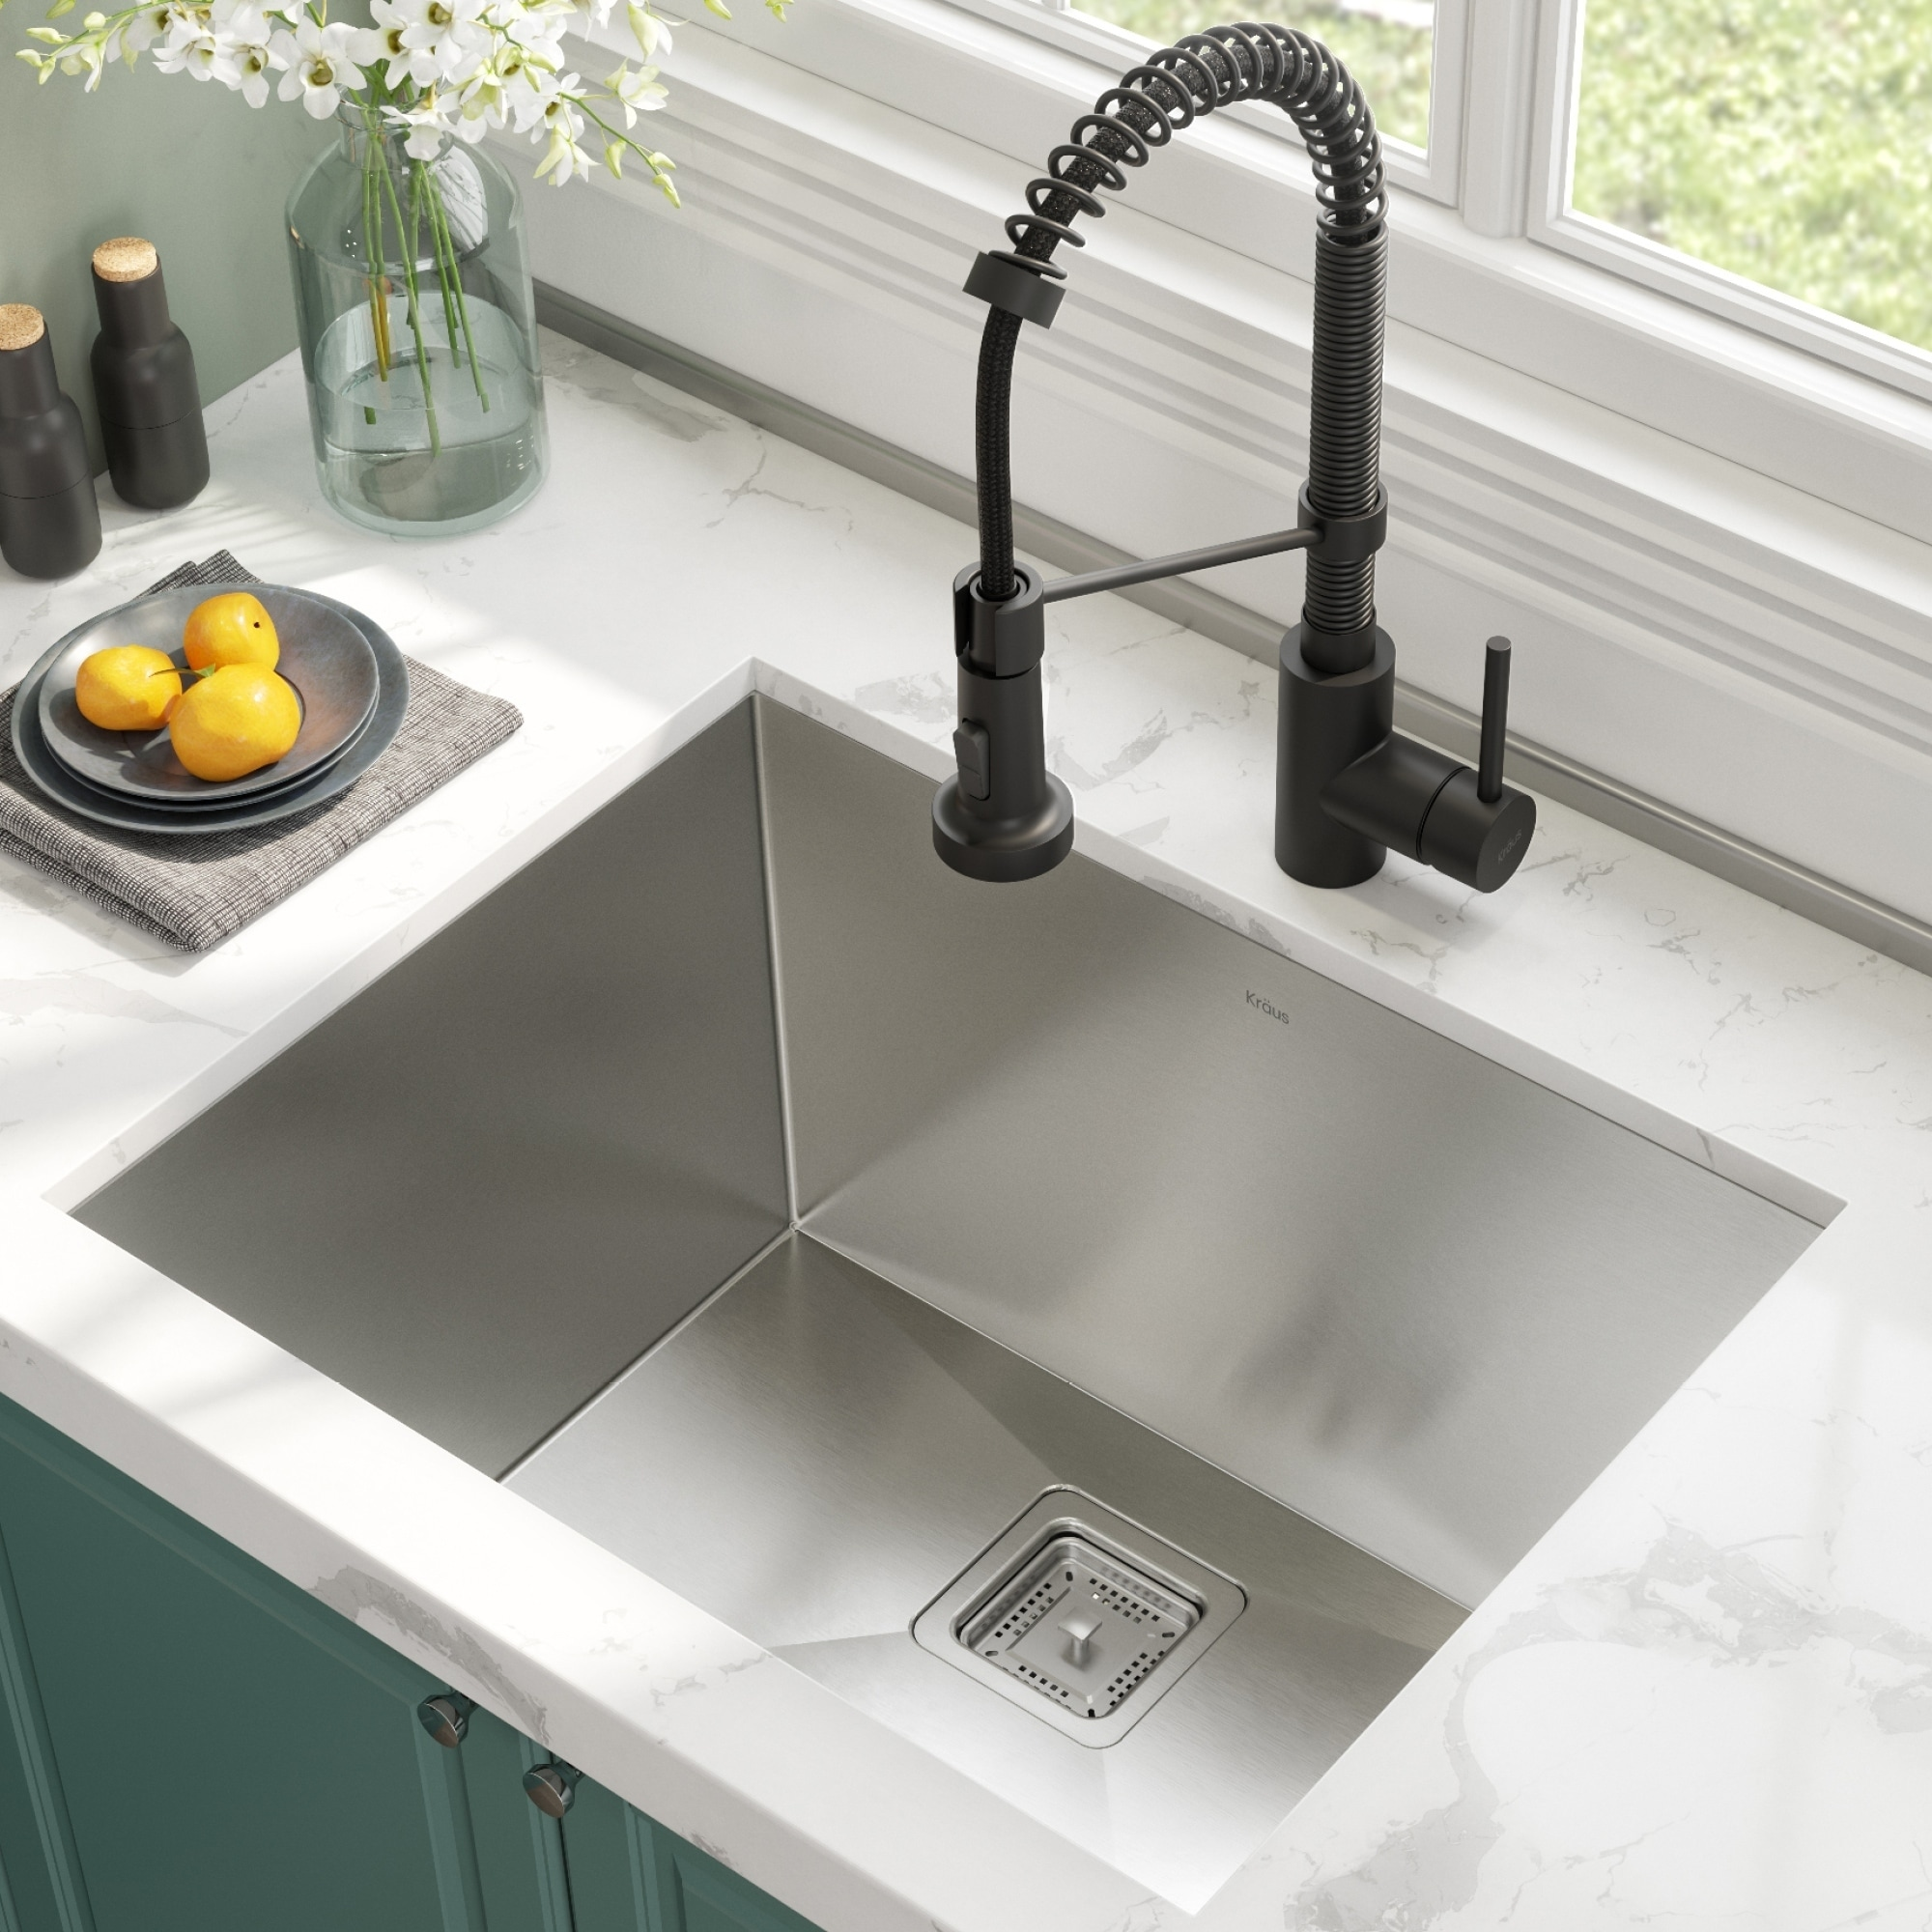 Kraus 24-inch Stainless Steel Kitchen Sink, Faucet, Soap